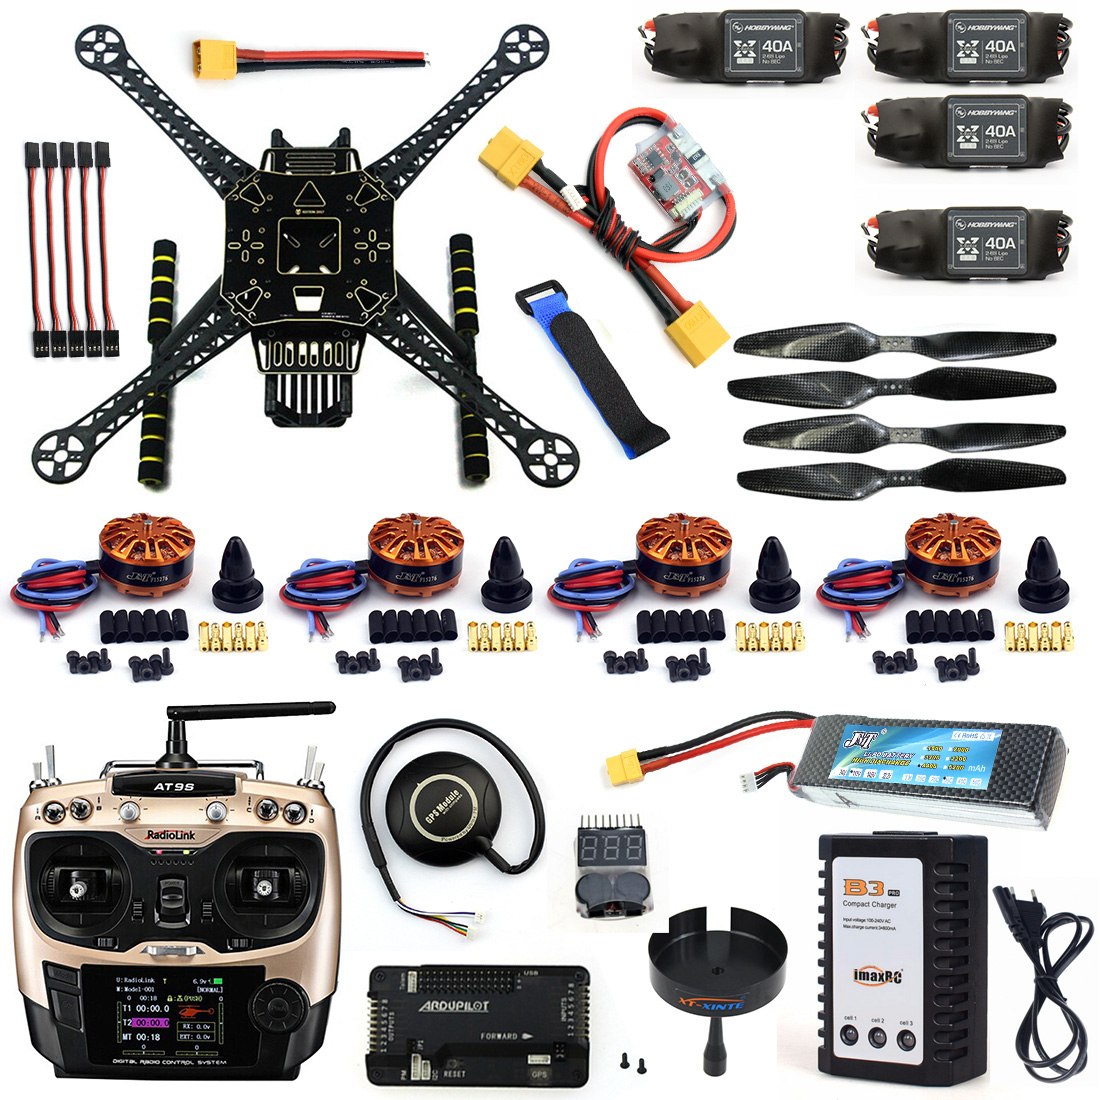 F19457-H DIY 4 Axle RC FPV Drone S600 Frame Kit with APM 2.8 No Compass 700KV Motor 40A ESC with Battery Charger AT9S TX